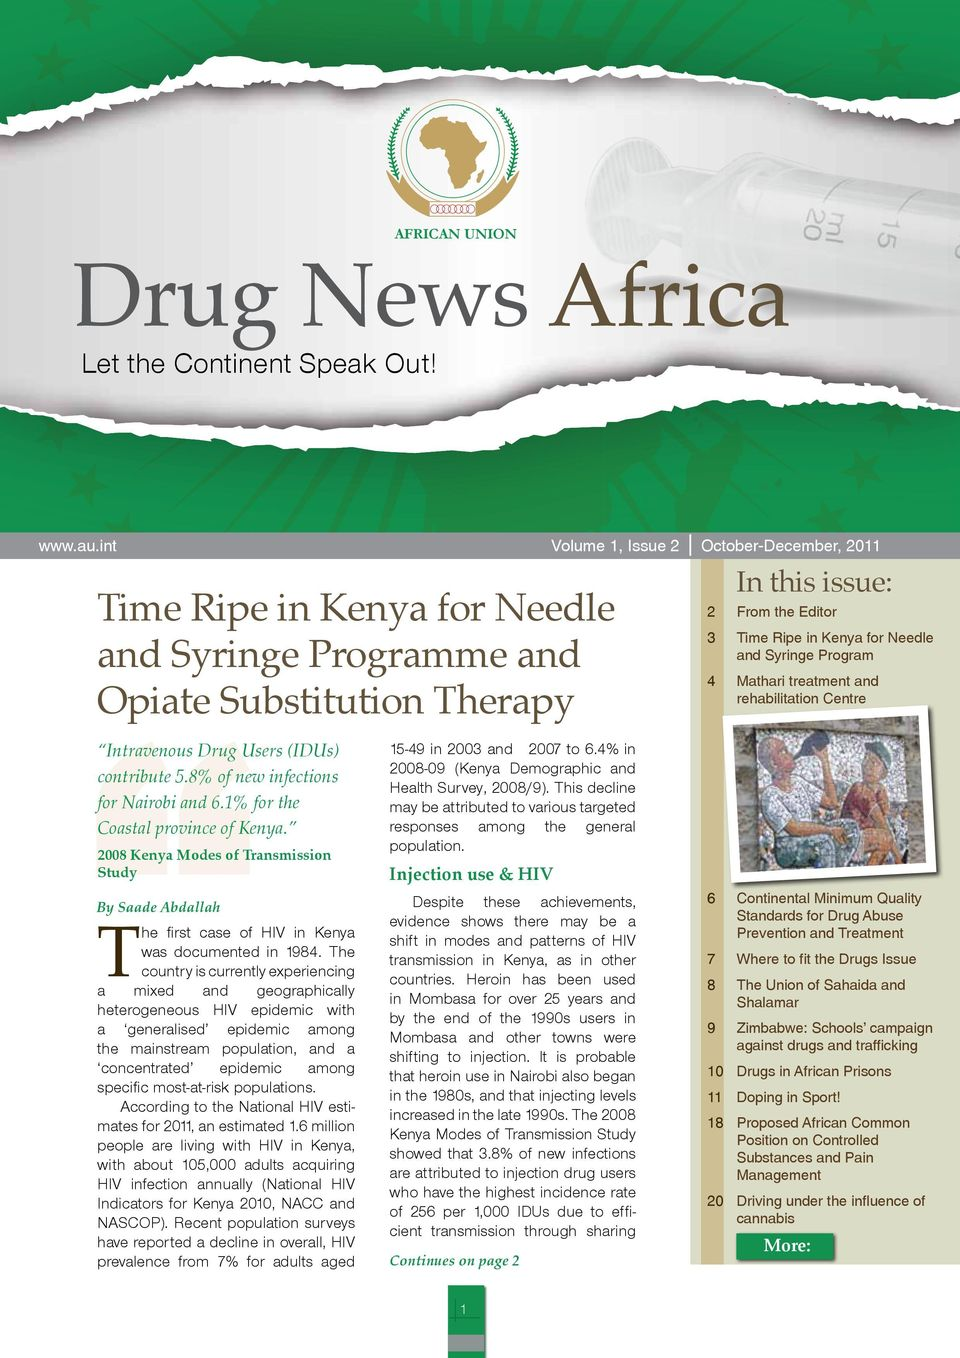 Syringe Program Mathari treatment and rehabilitation Centre Intravenous Drug Users (IDUs) contribute 5.8% of new infections for Nairobi and 6.1% for the Coastal province of Kenya.